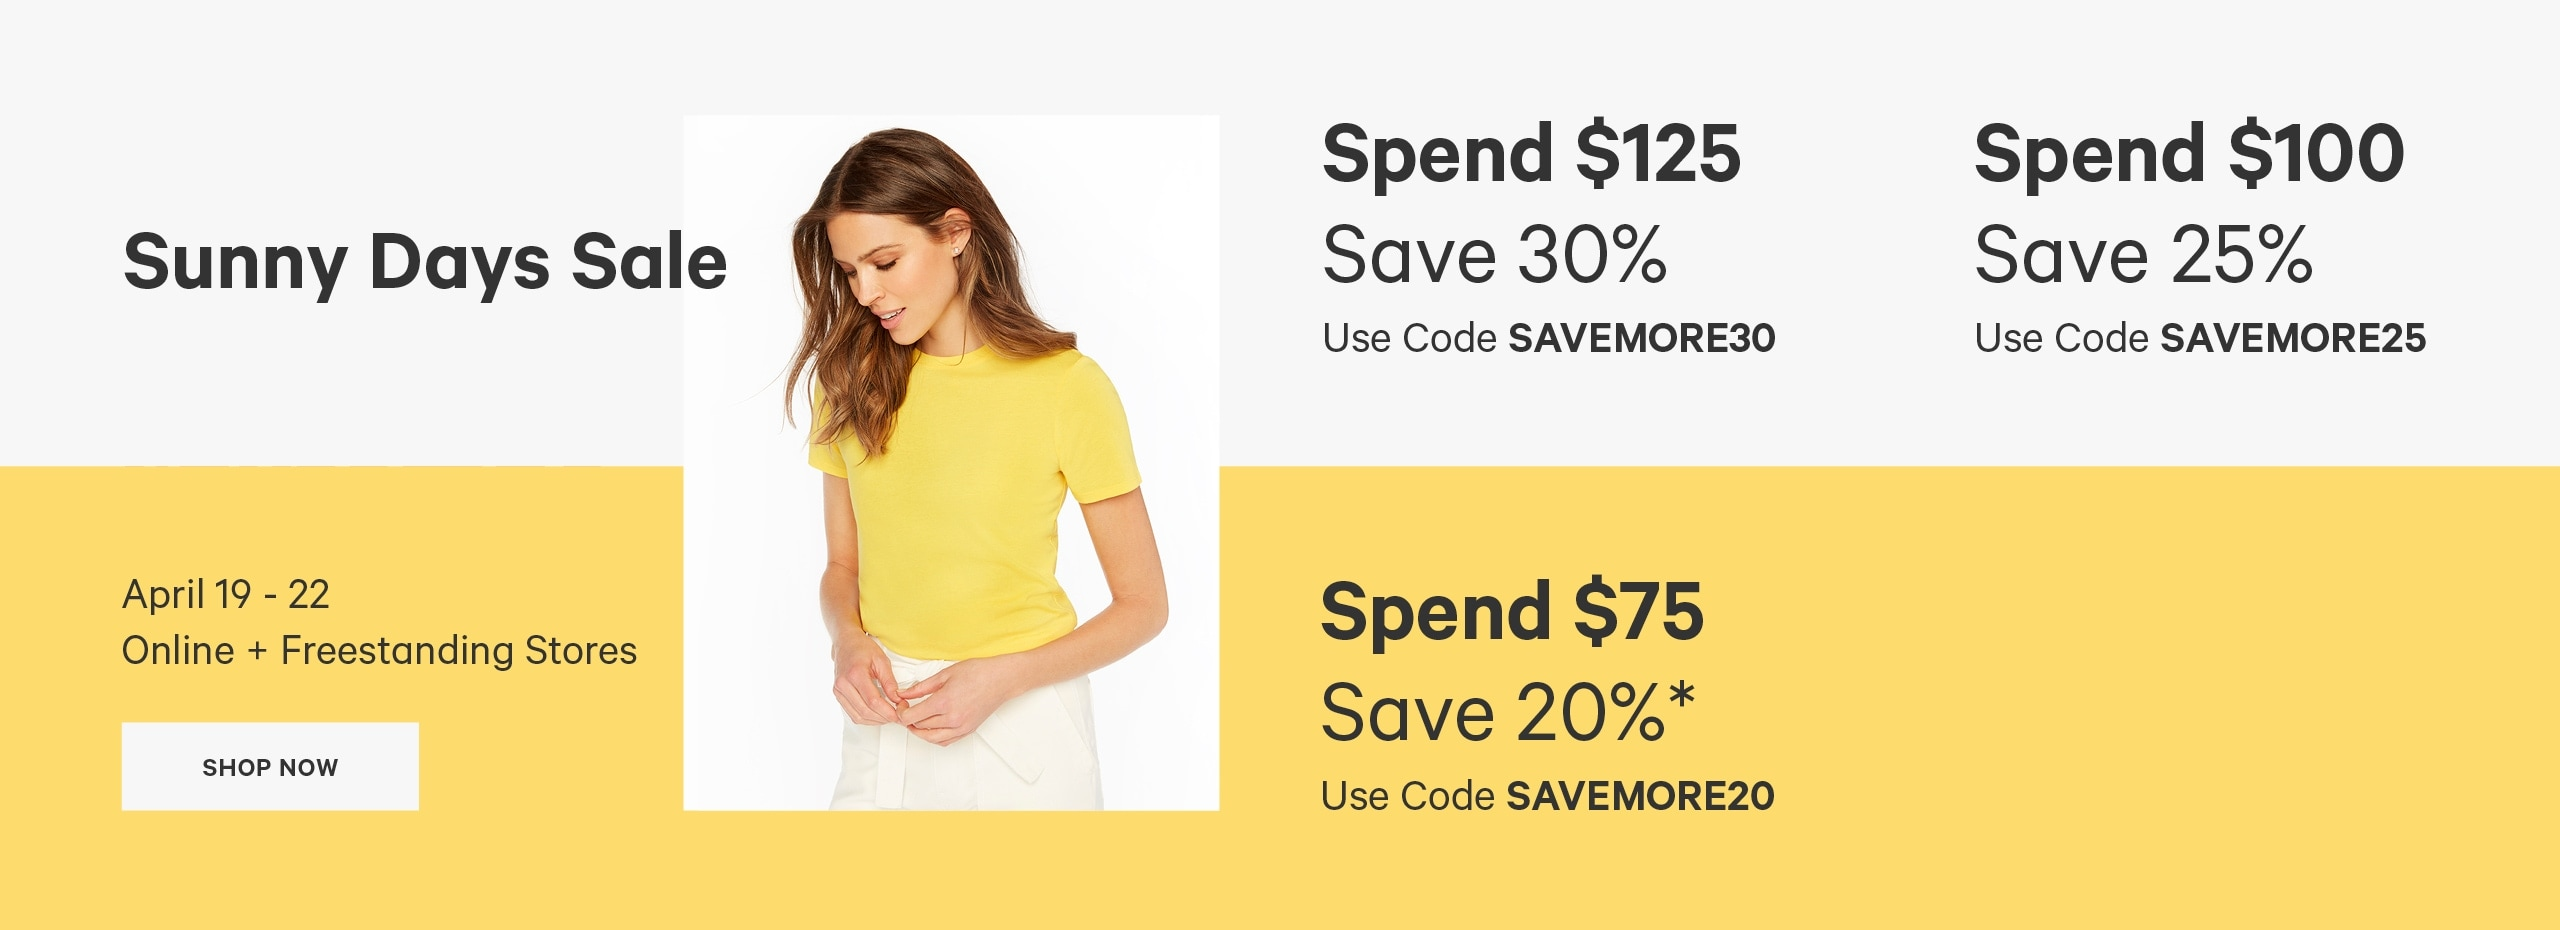 Spend 125 dollars, save 30 percent